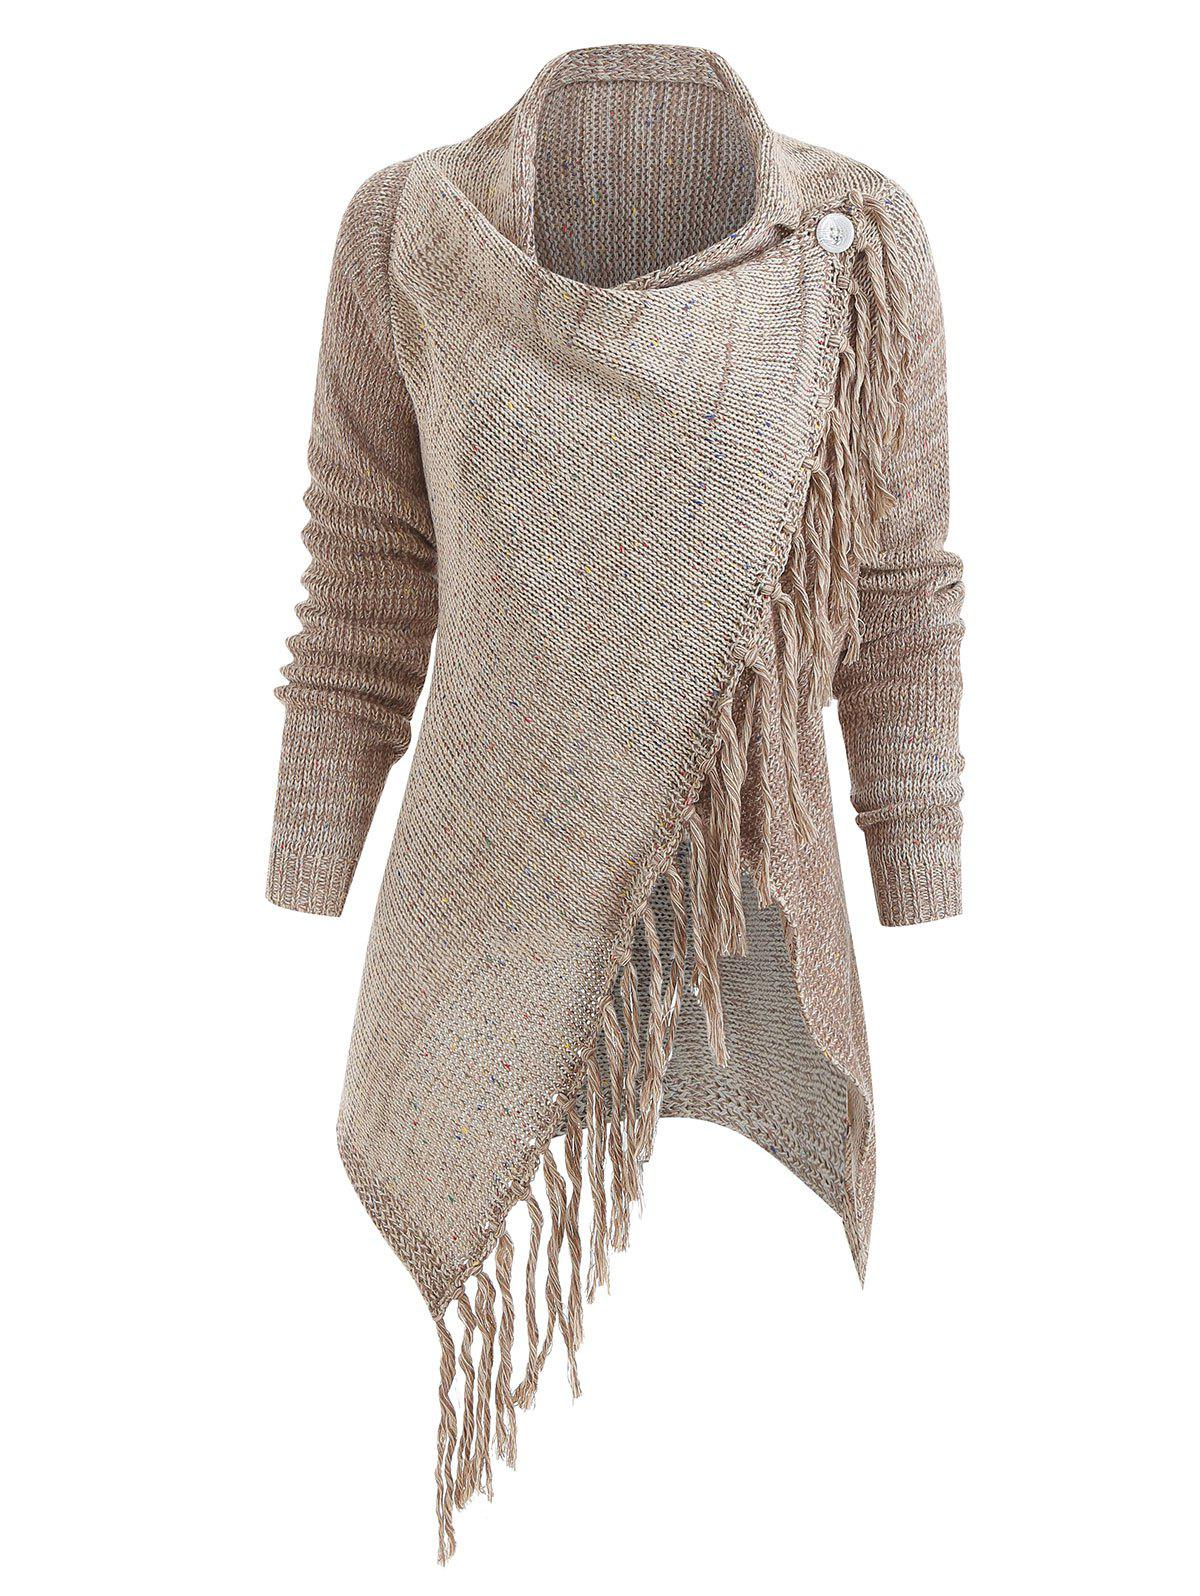 Asymmetrical Fringed Knitted Cardigan - LIGHT KHAKI M